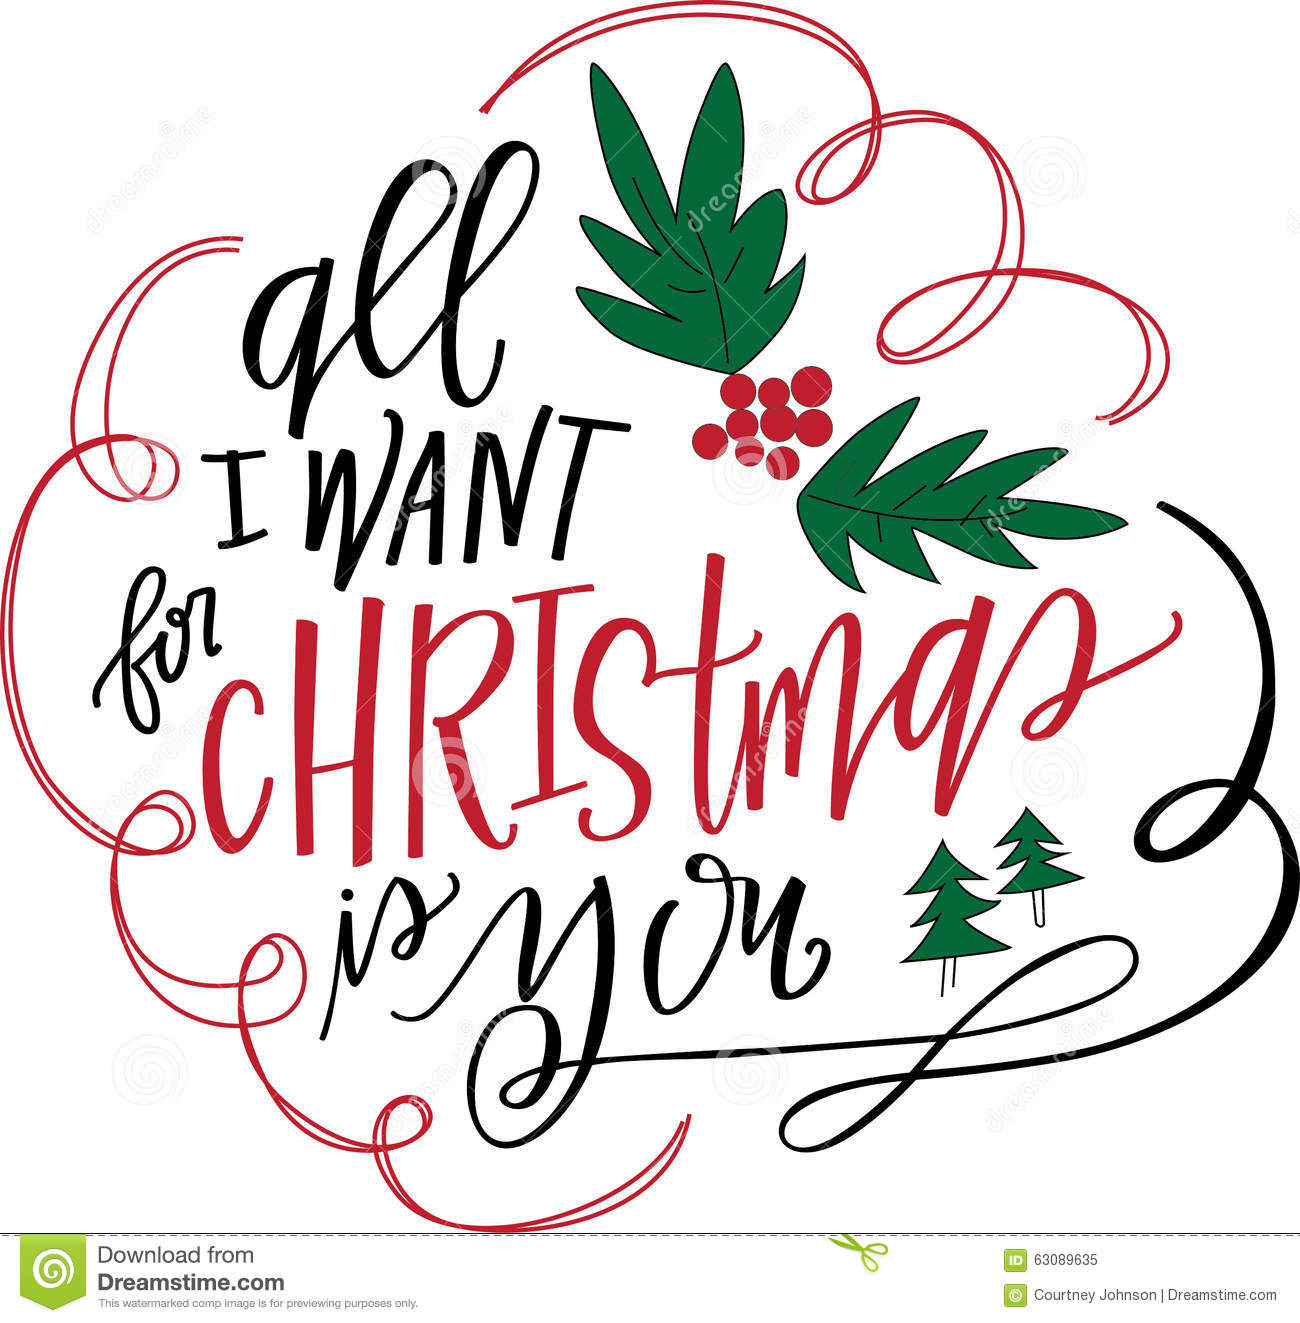 All I Want For Christmas Is You Stock Illustration - Image: 63089635